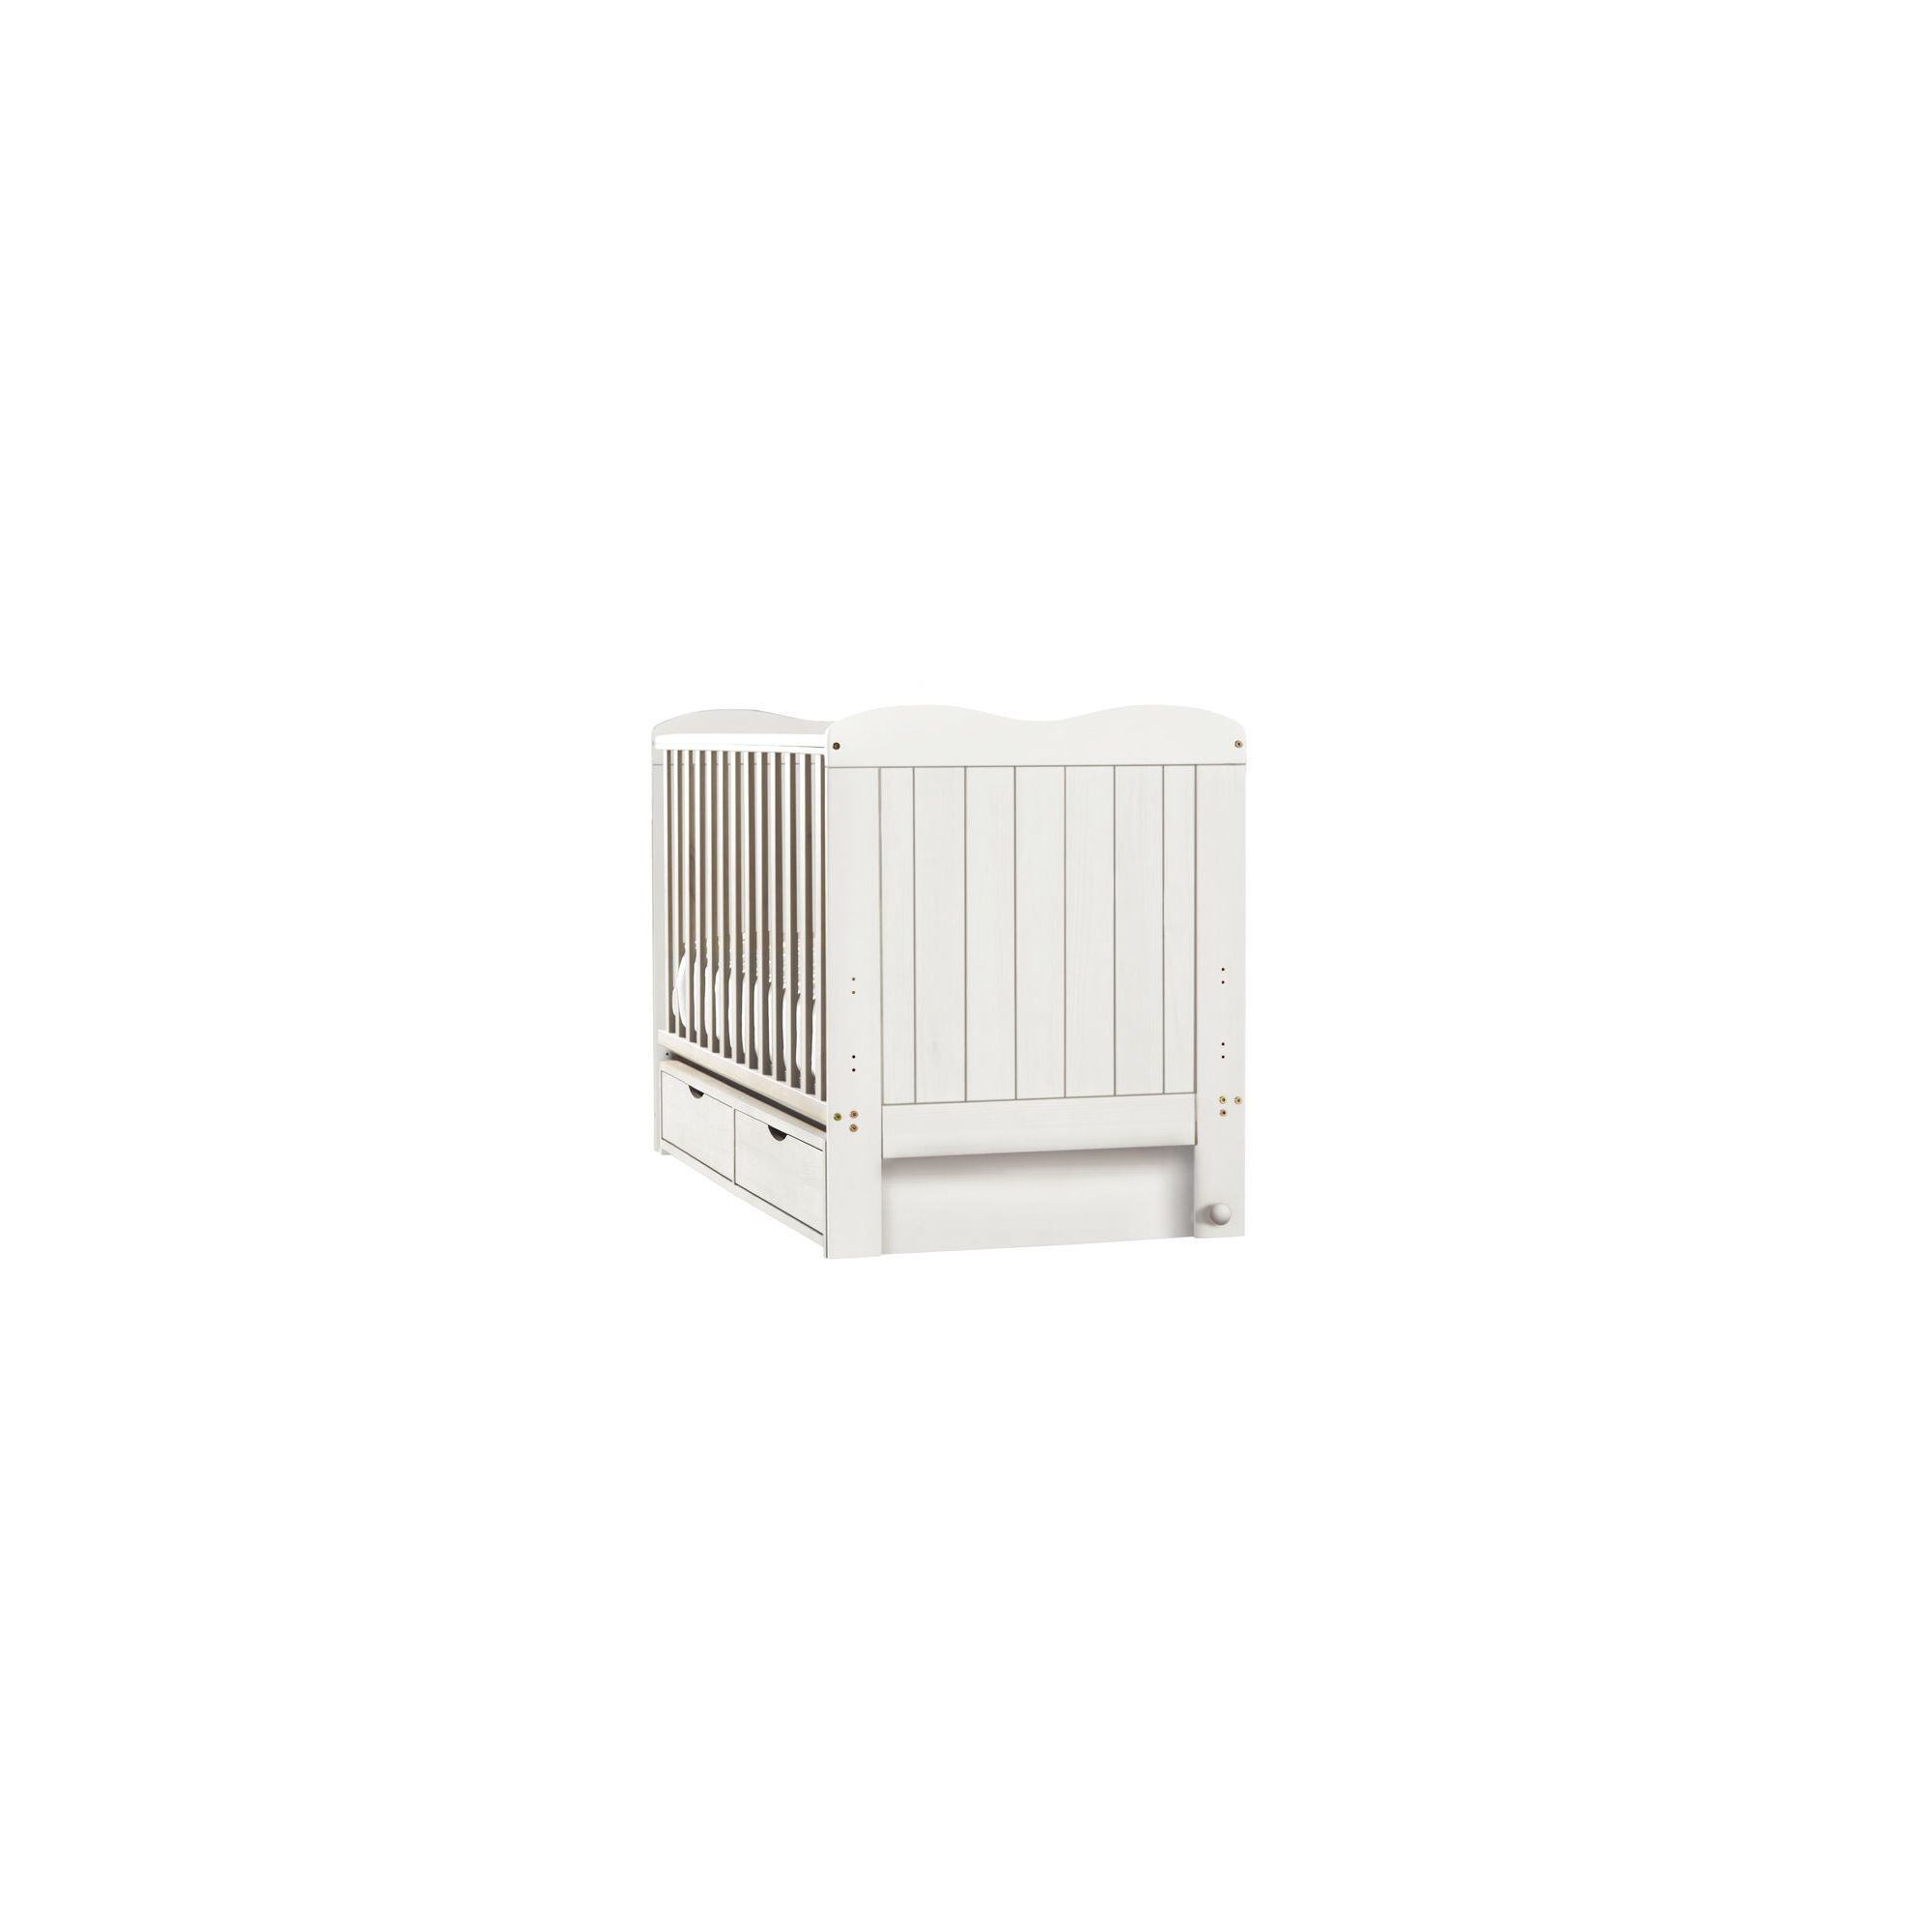 Saplings Glideaway Cot Bed - White at Tesco Direct